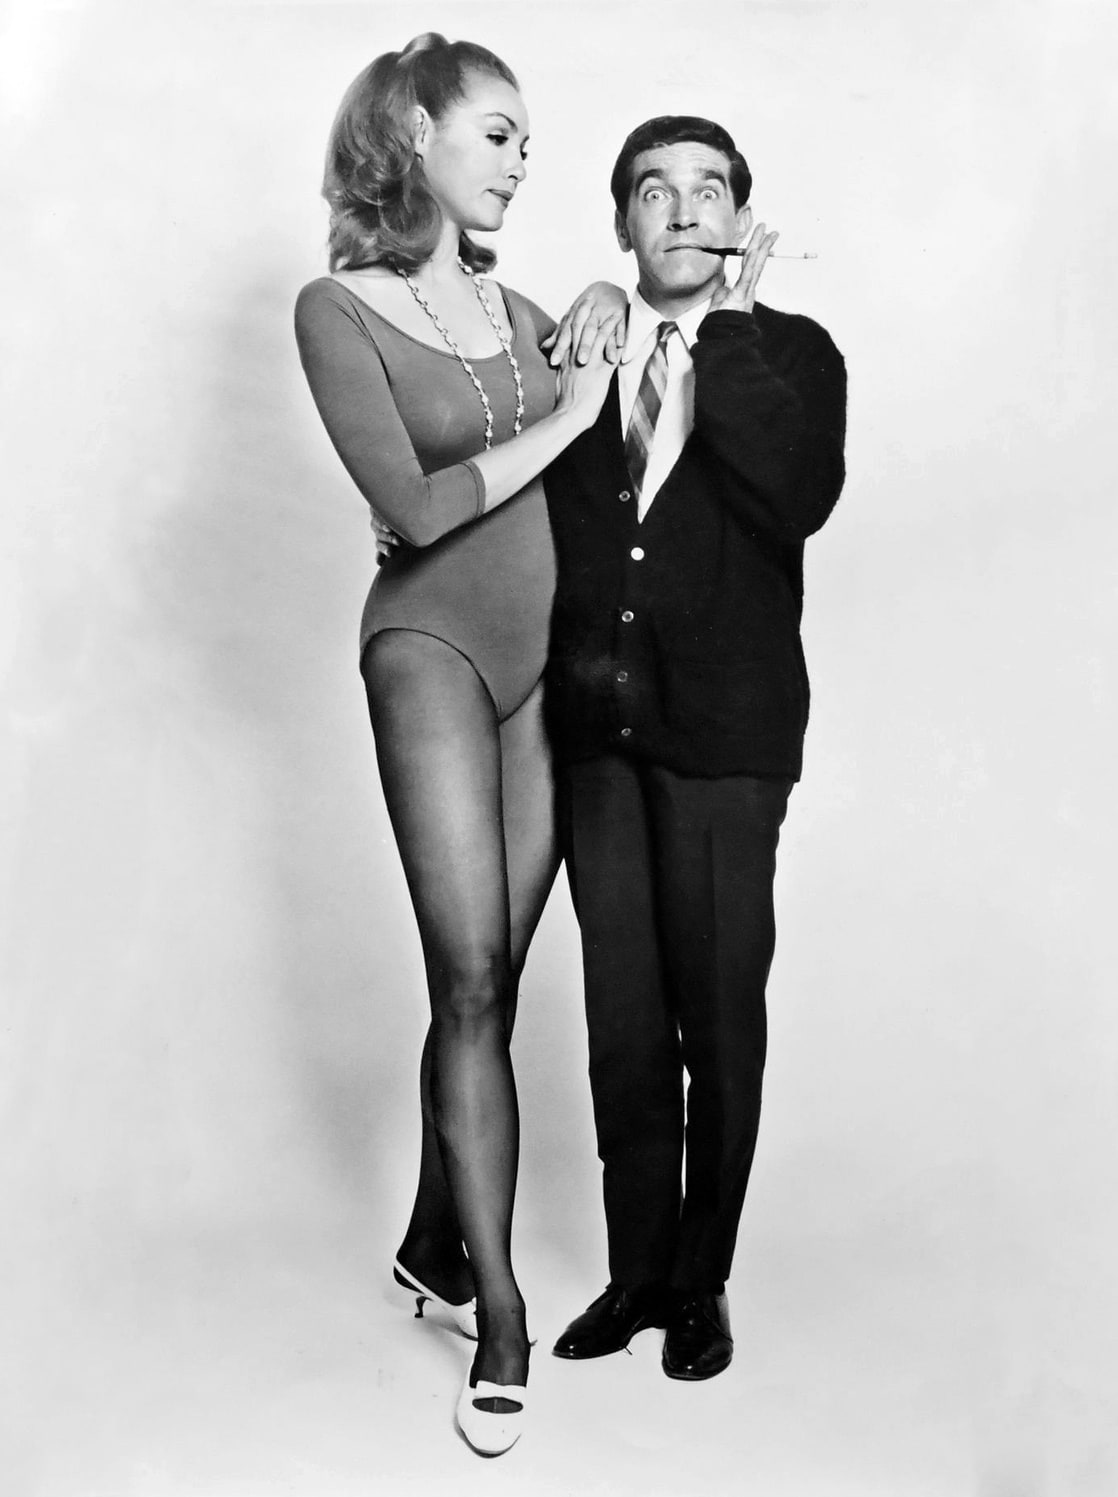 Julie newmar in pantyhose images 171